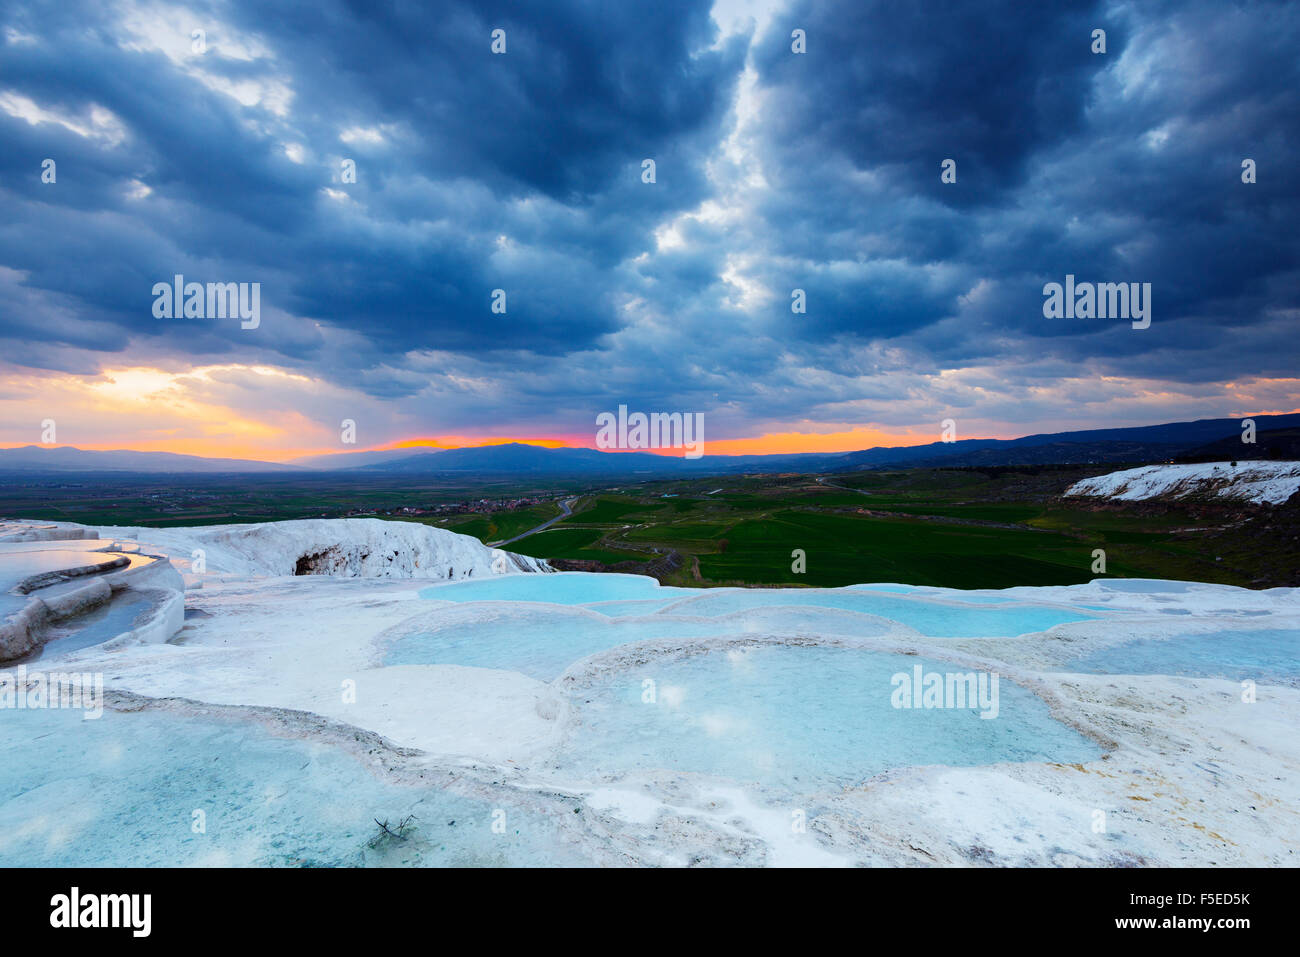 White travertine basins at sunset, Pamukkale, UNESCO World Heritage Site, Western Anatolia, Turkey, Asia Minor, - Stock Image